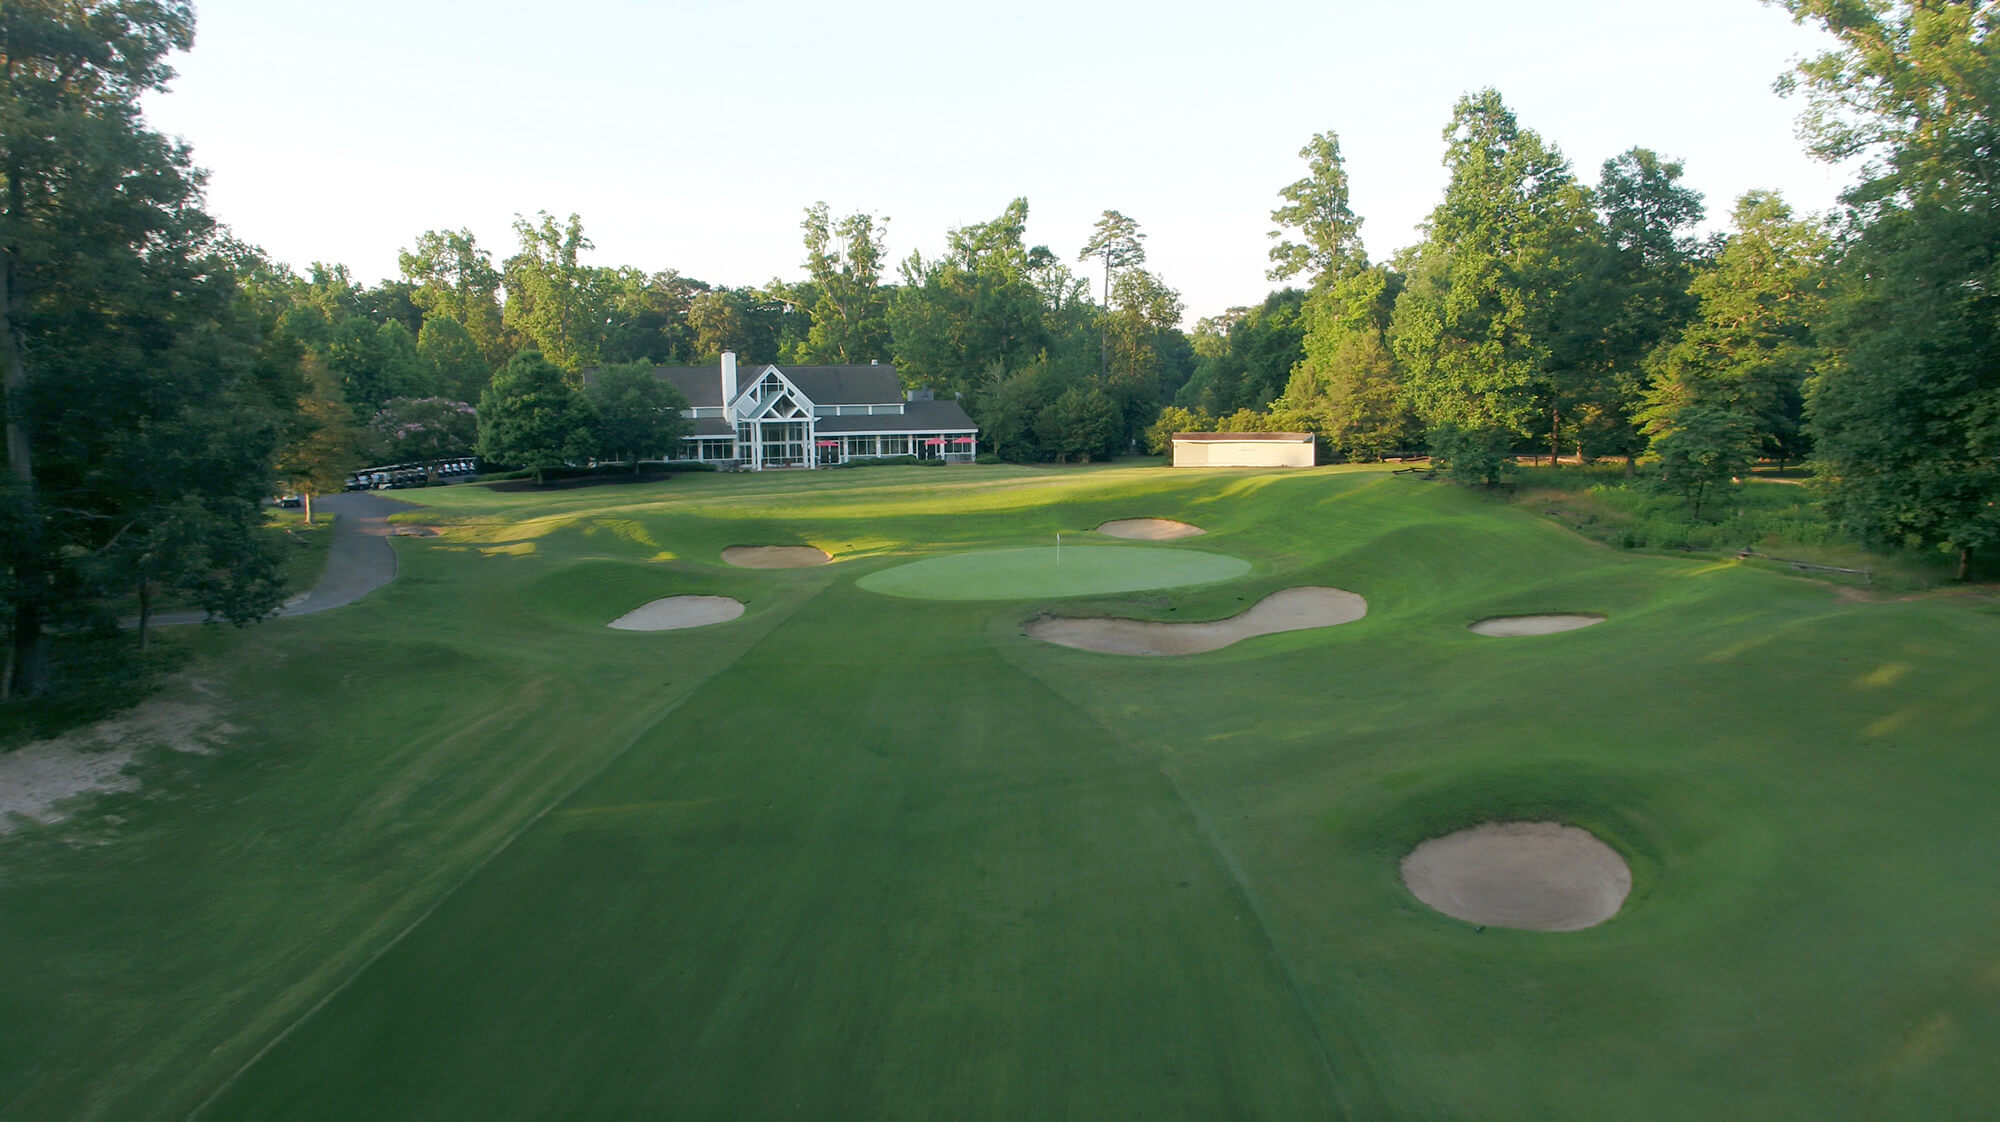 Green Course Club House & Hole #18 at Golden Horseshoe Golf Club